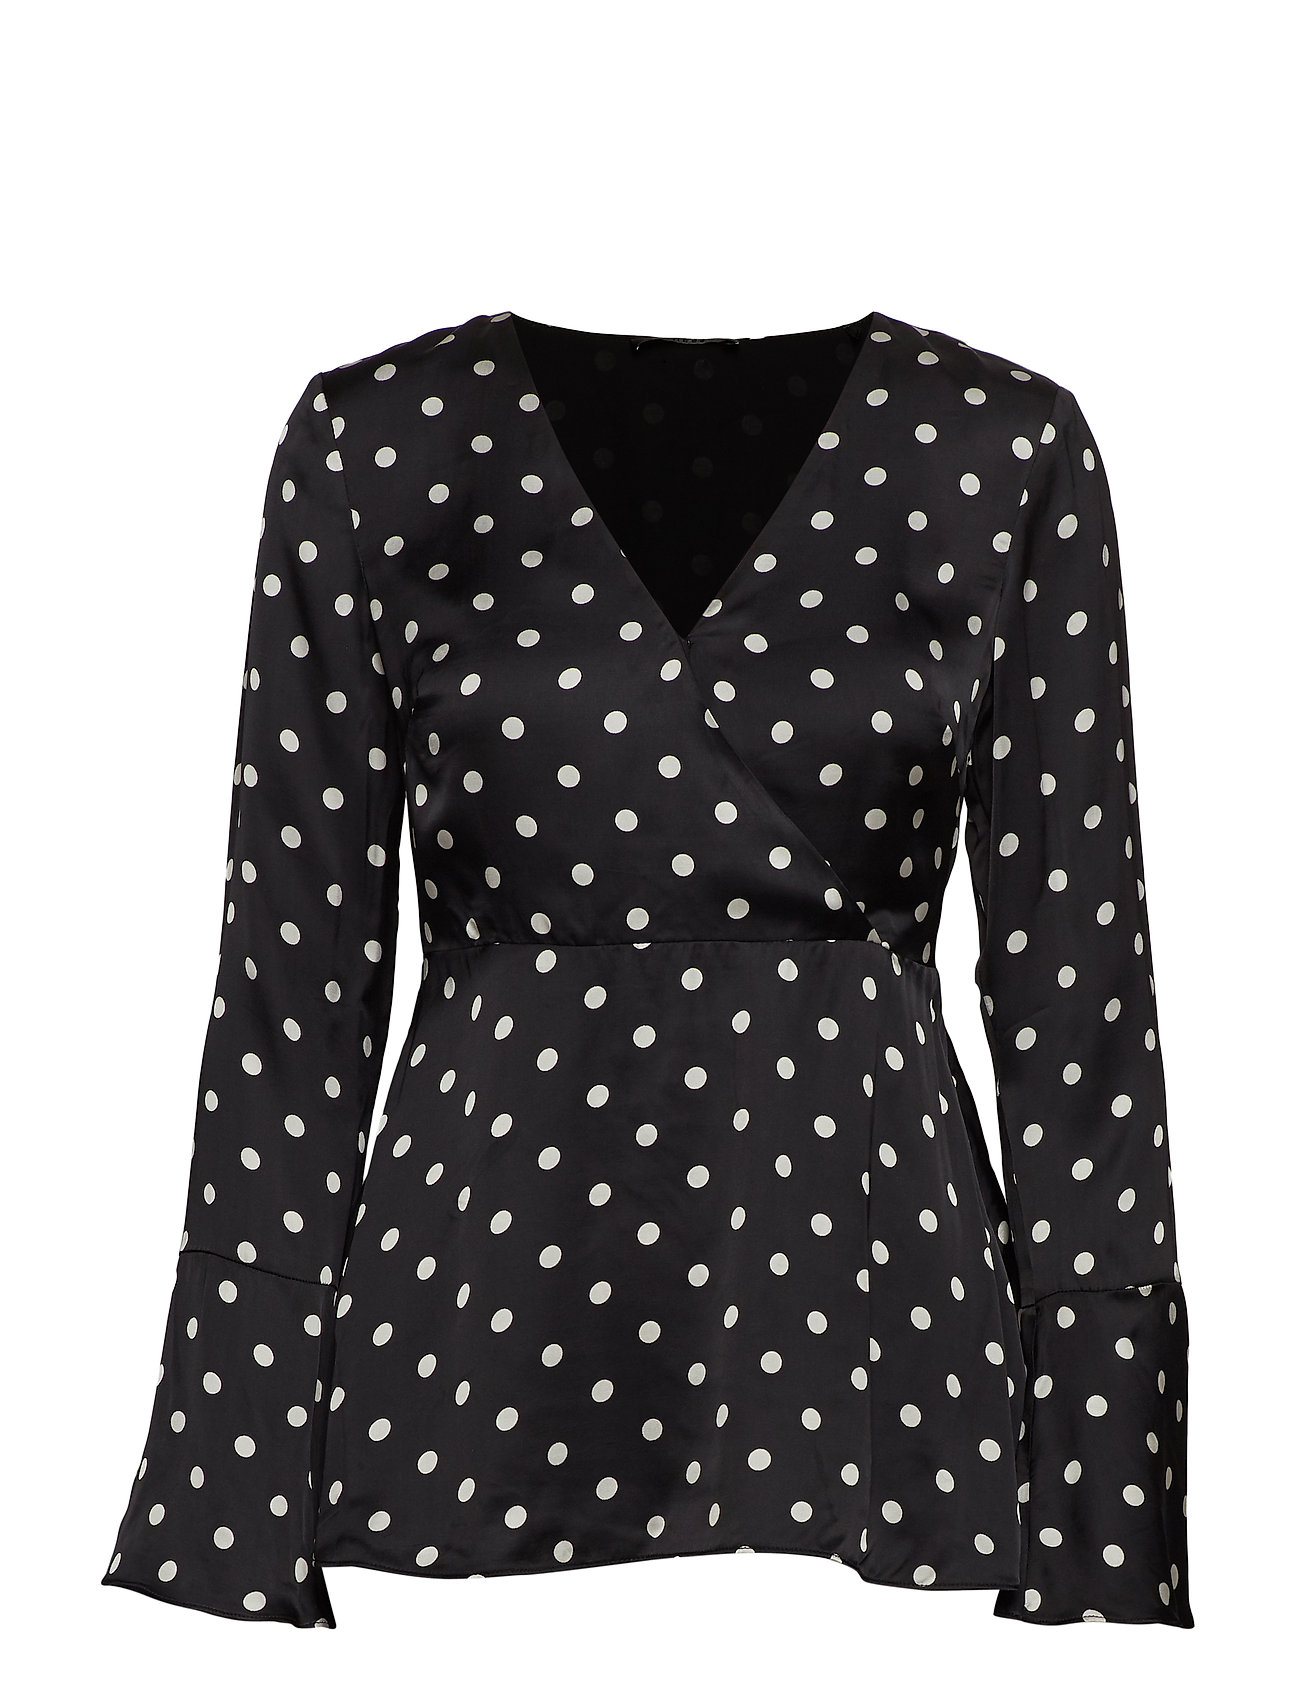 GUESS Jeans LS MAURIZIA TOP - B&W SMALL POIS